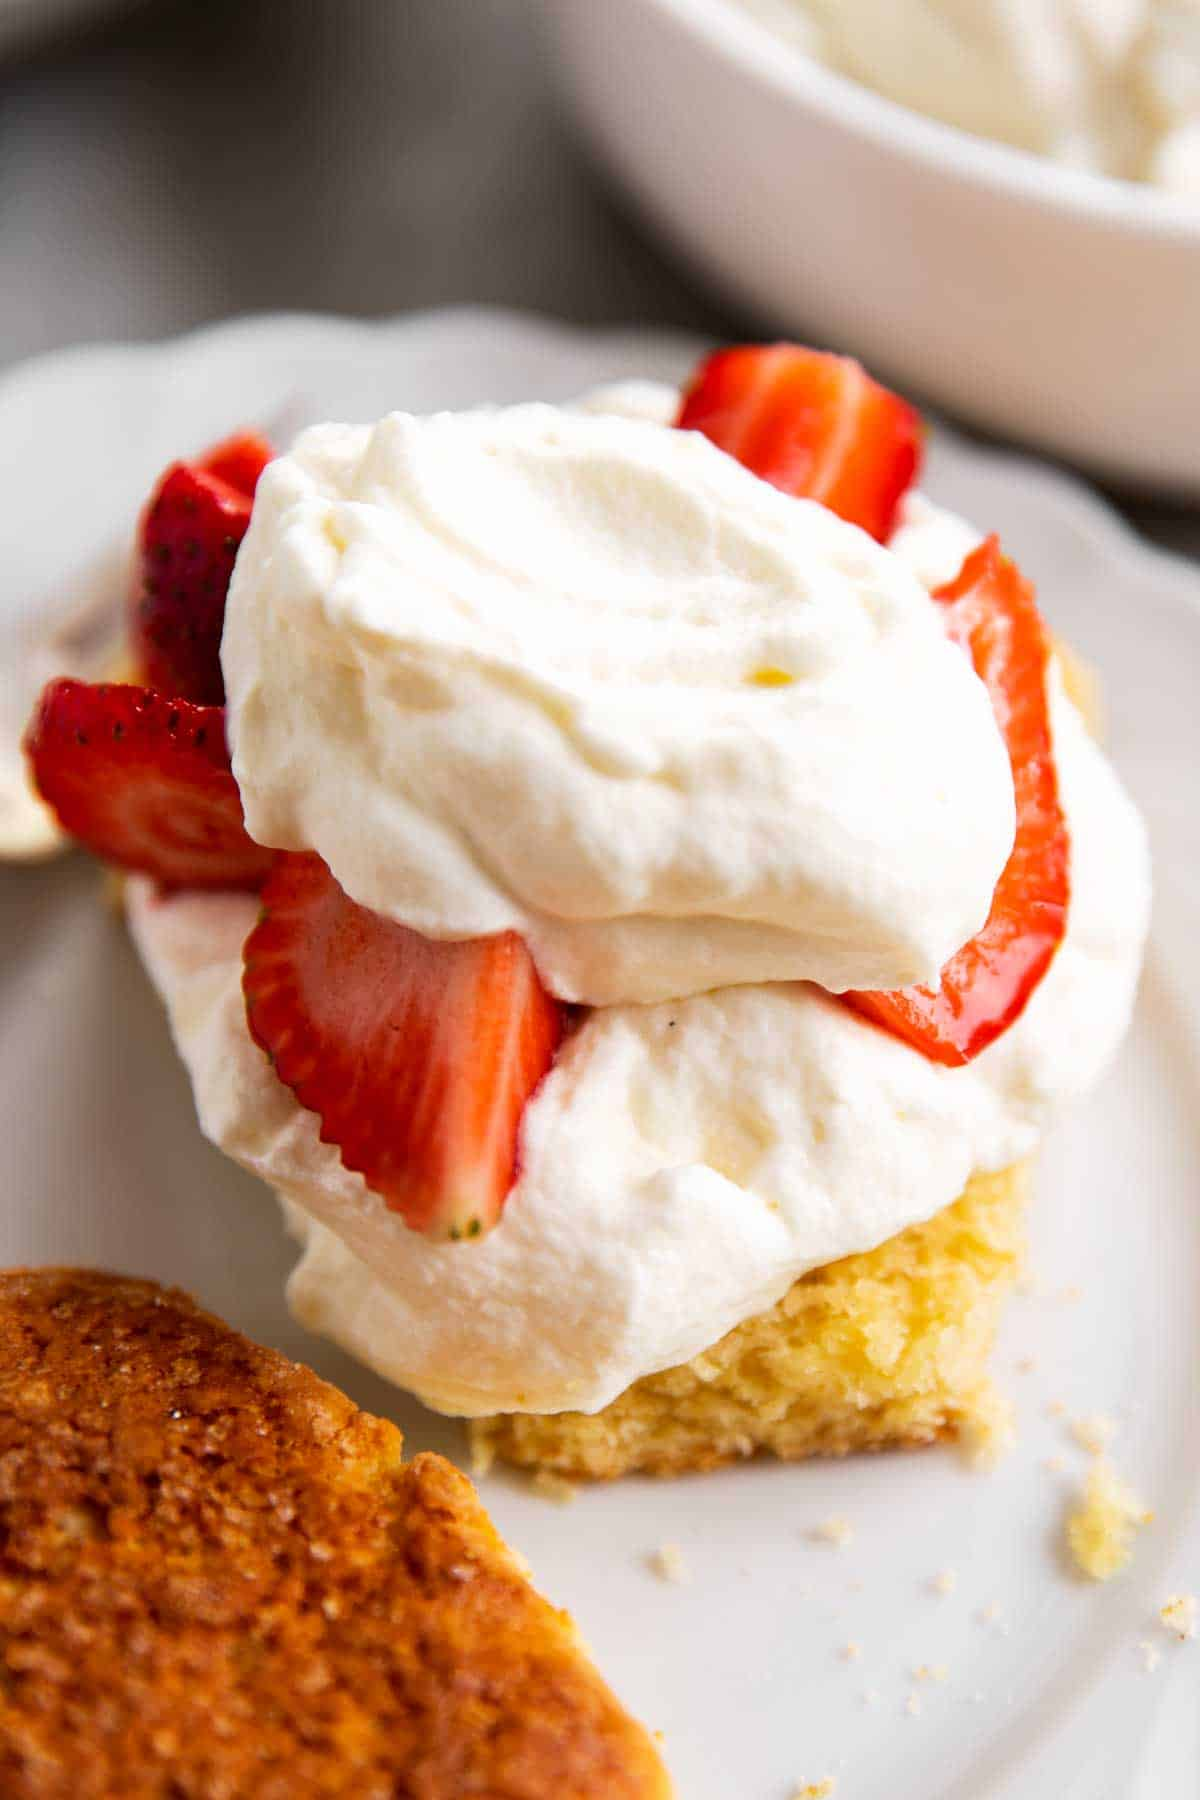 split shortcake topped with whipped cream and strawberries